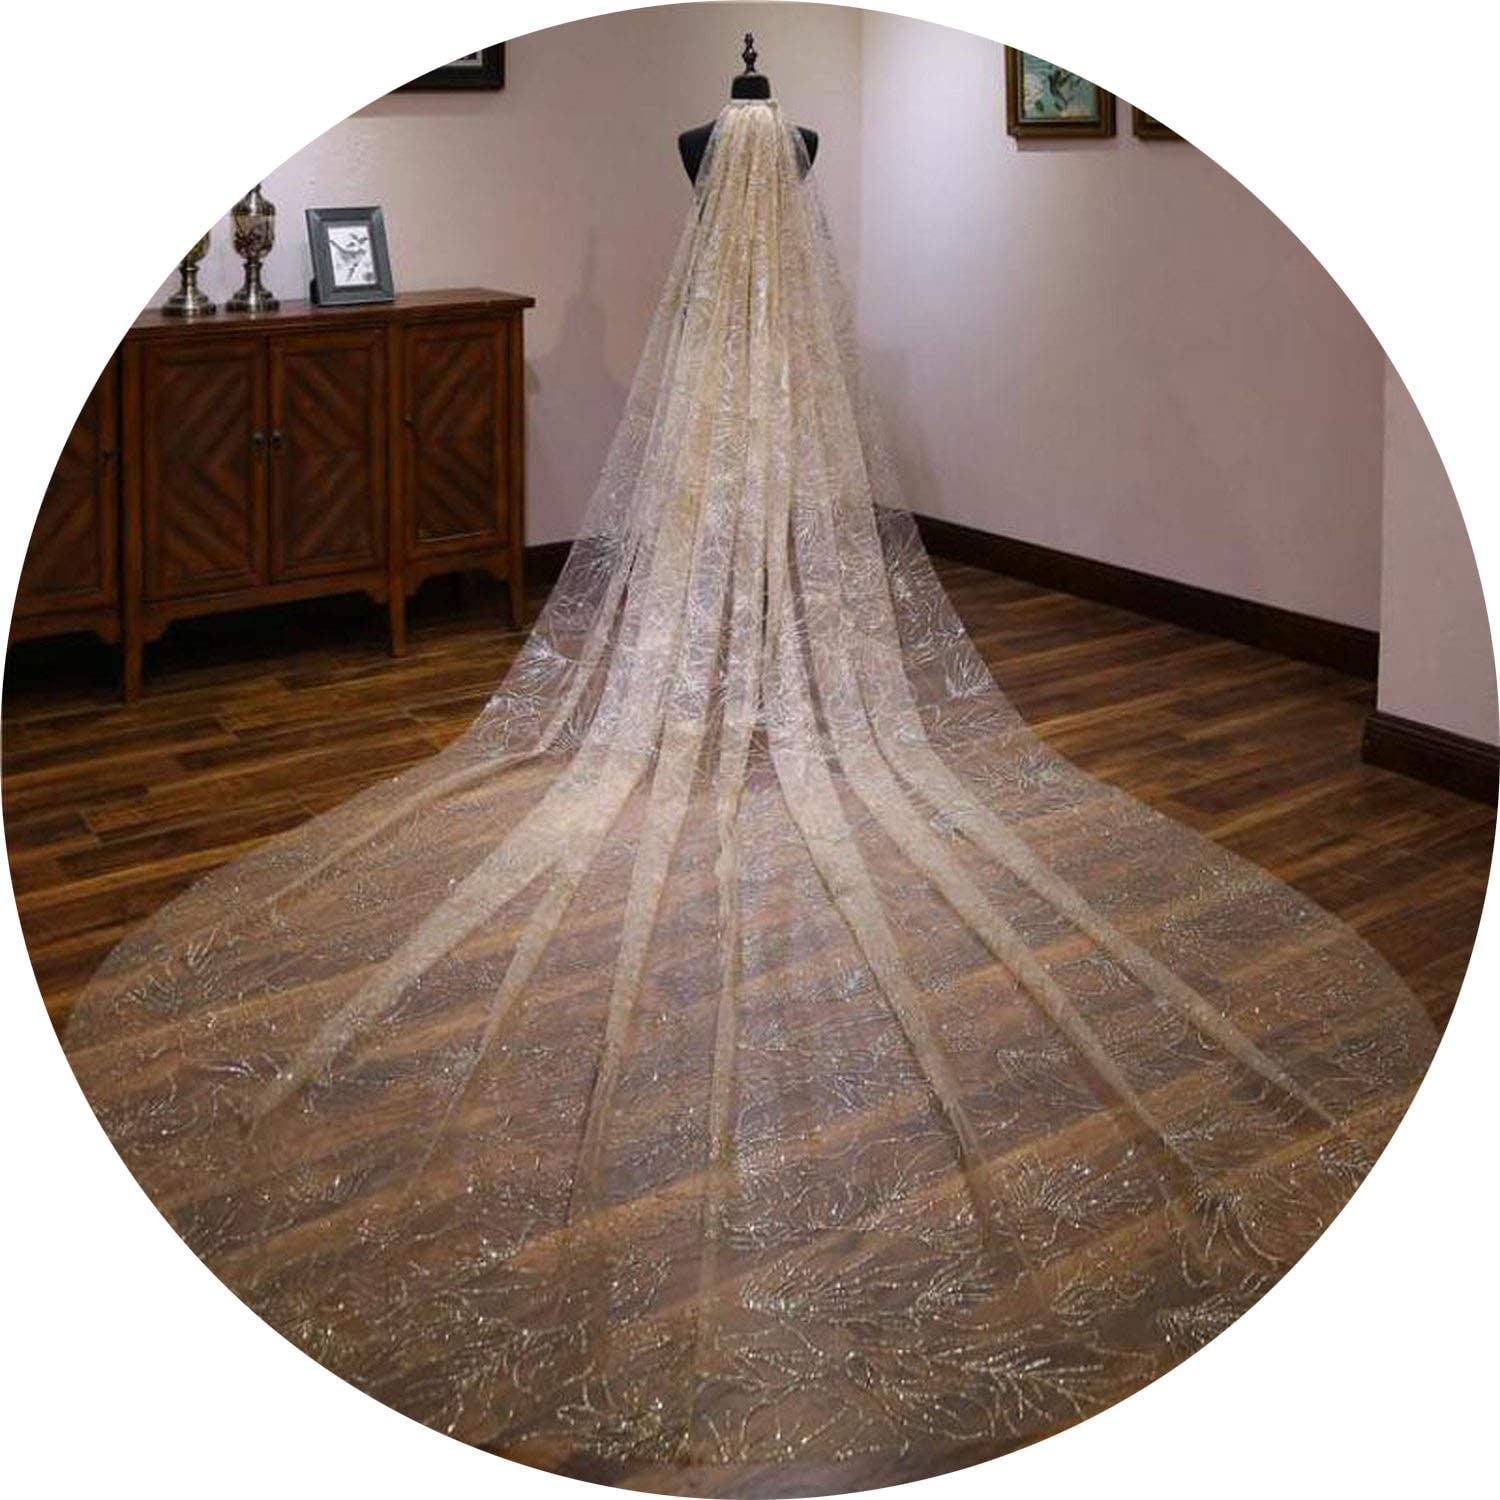 Champagne White Luxury Women Bridal Long Veils One Layer 3 Meters Romantic Cathedral Wedding Veils Marriage Gift,White,300Cm